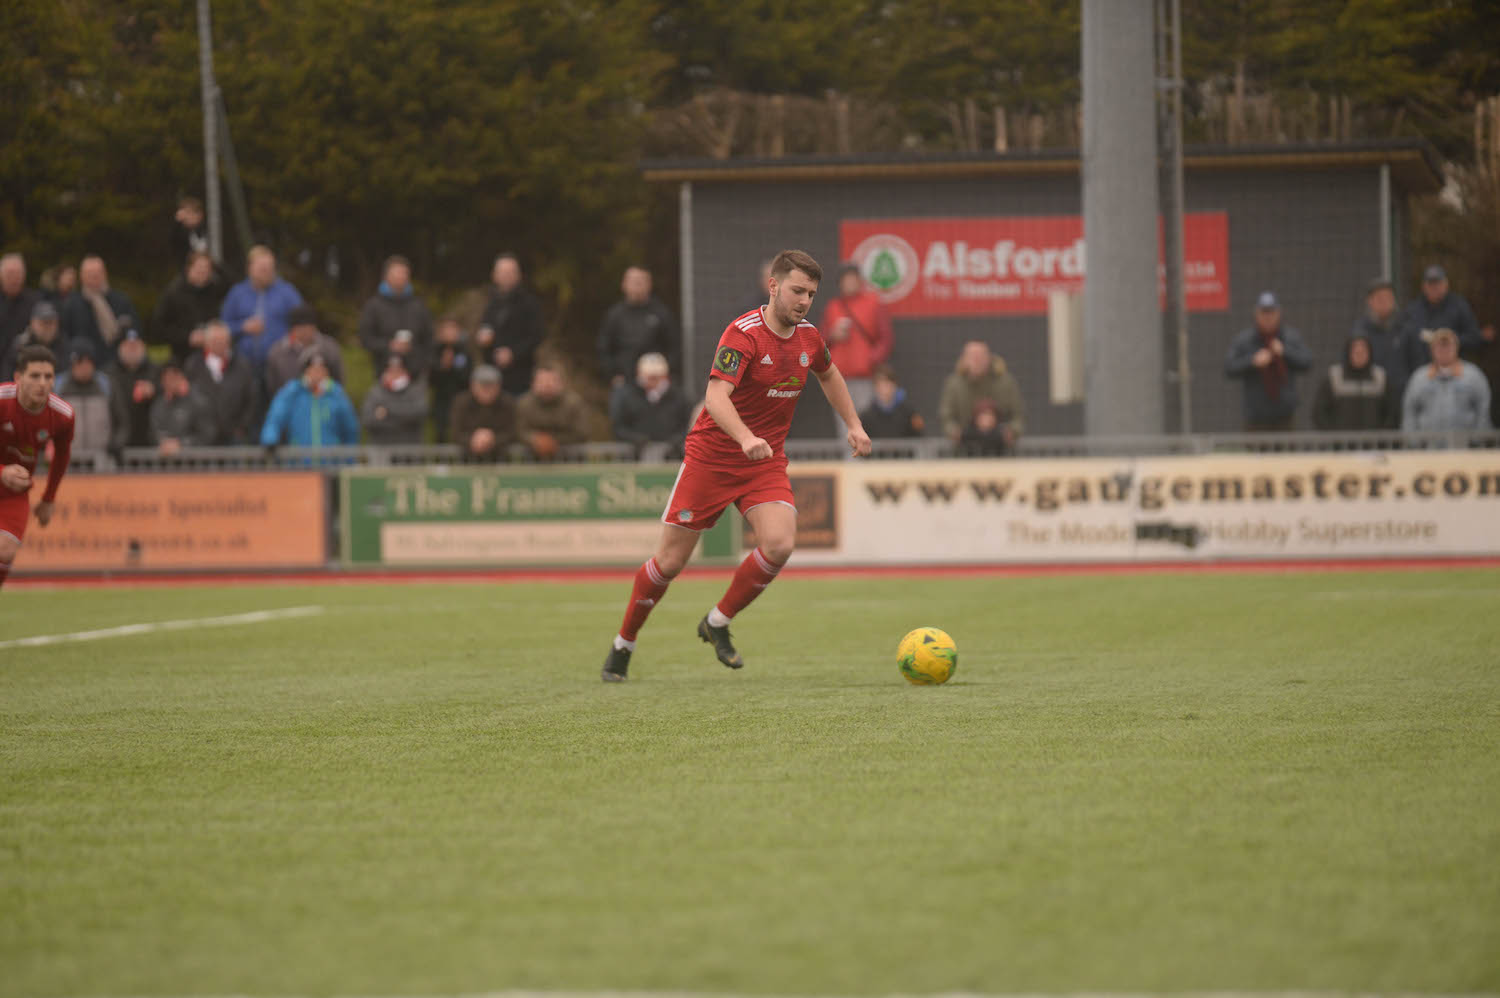 Read the full article - Worthing Cruise To Victory In Six Goal Thriller